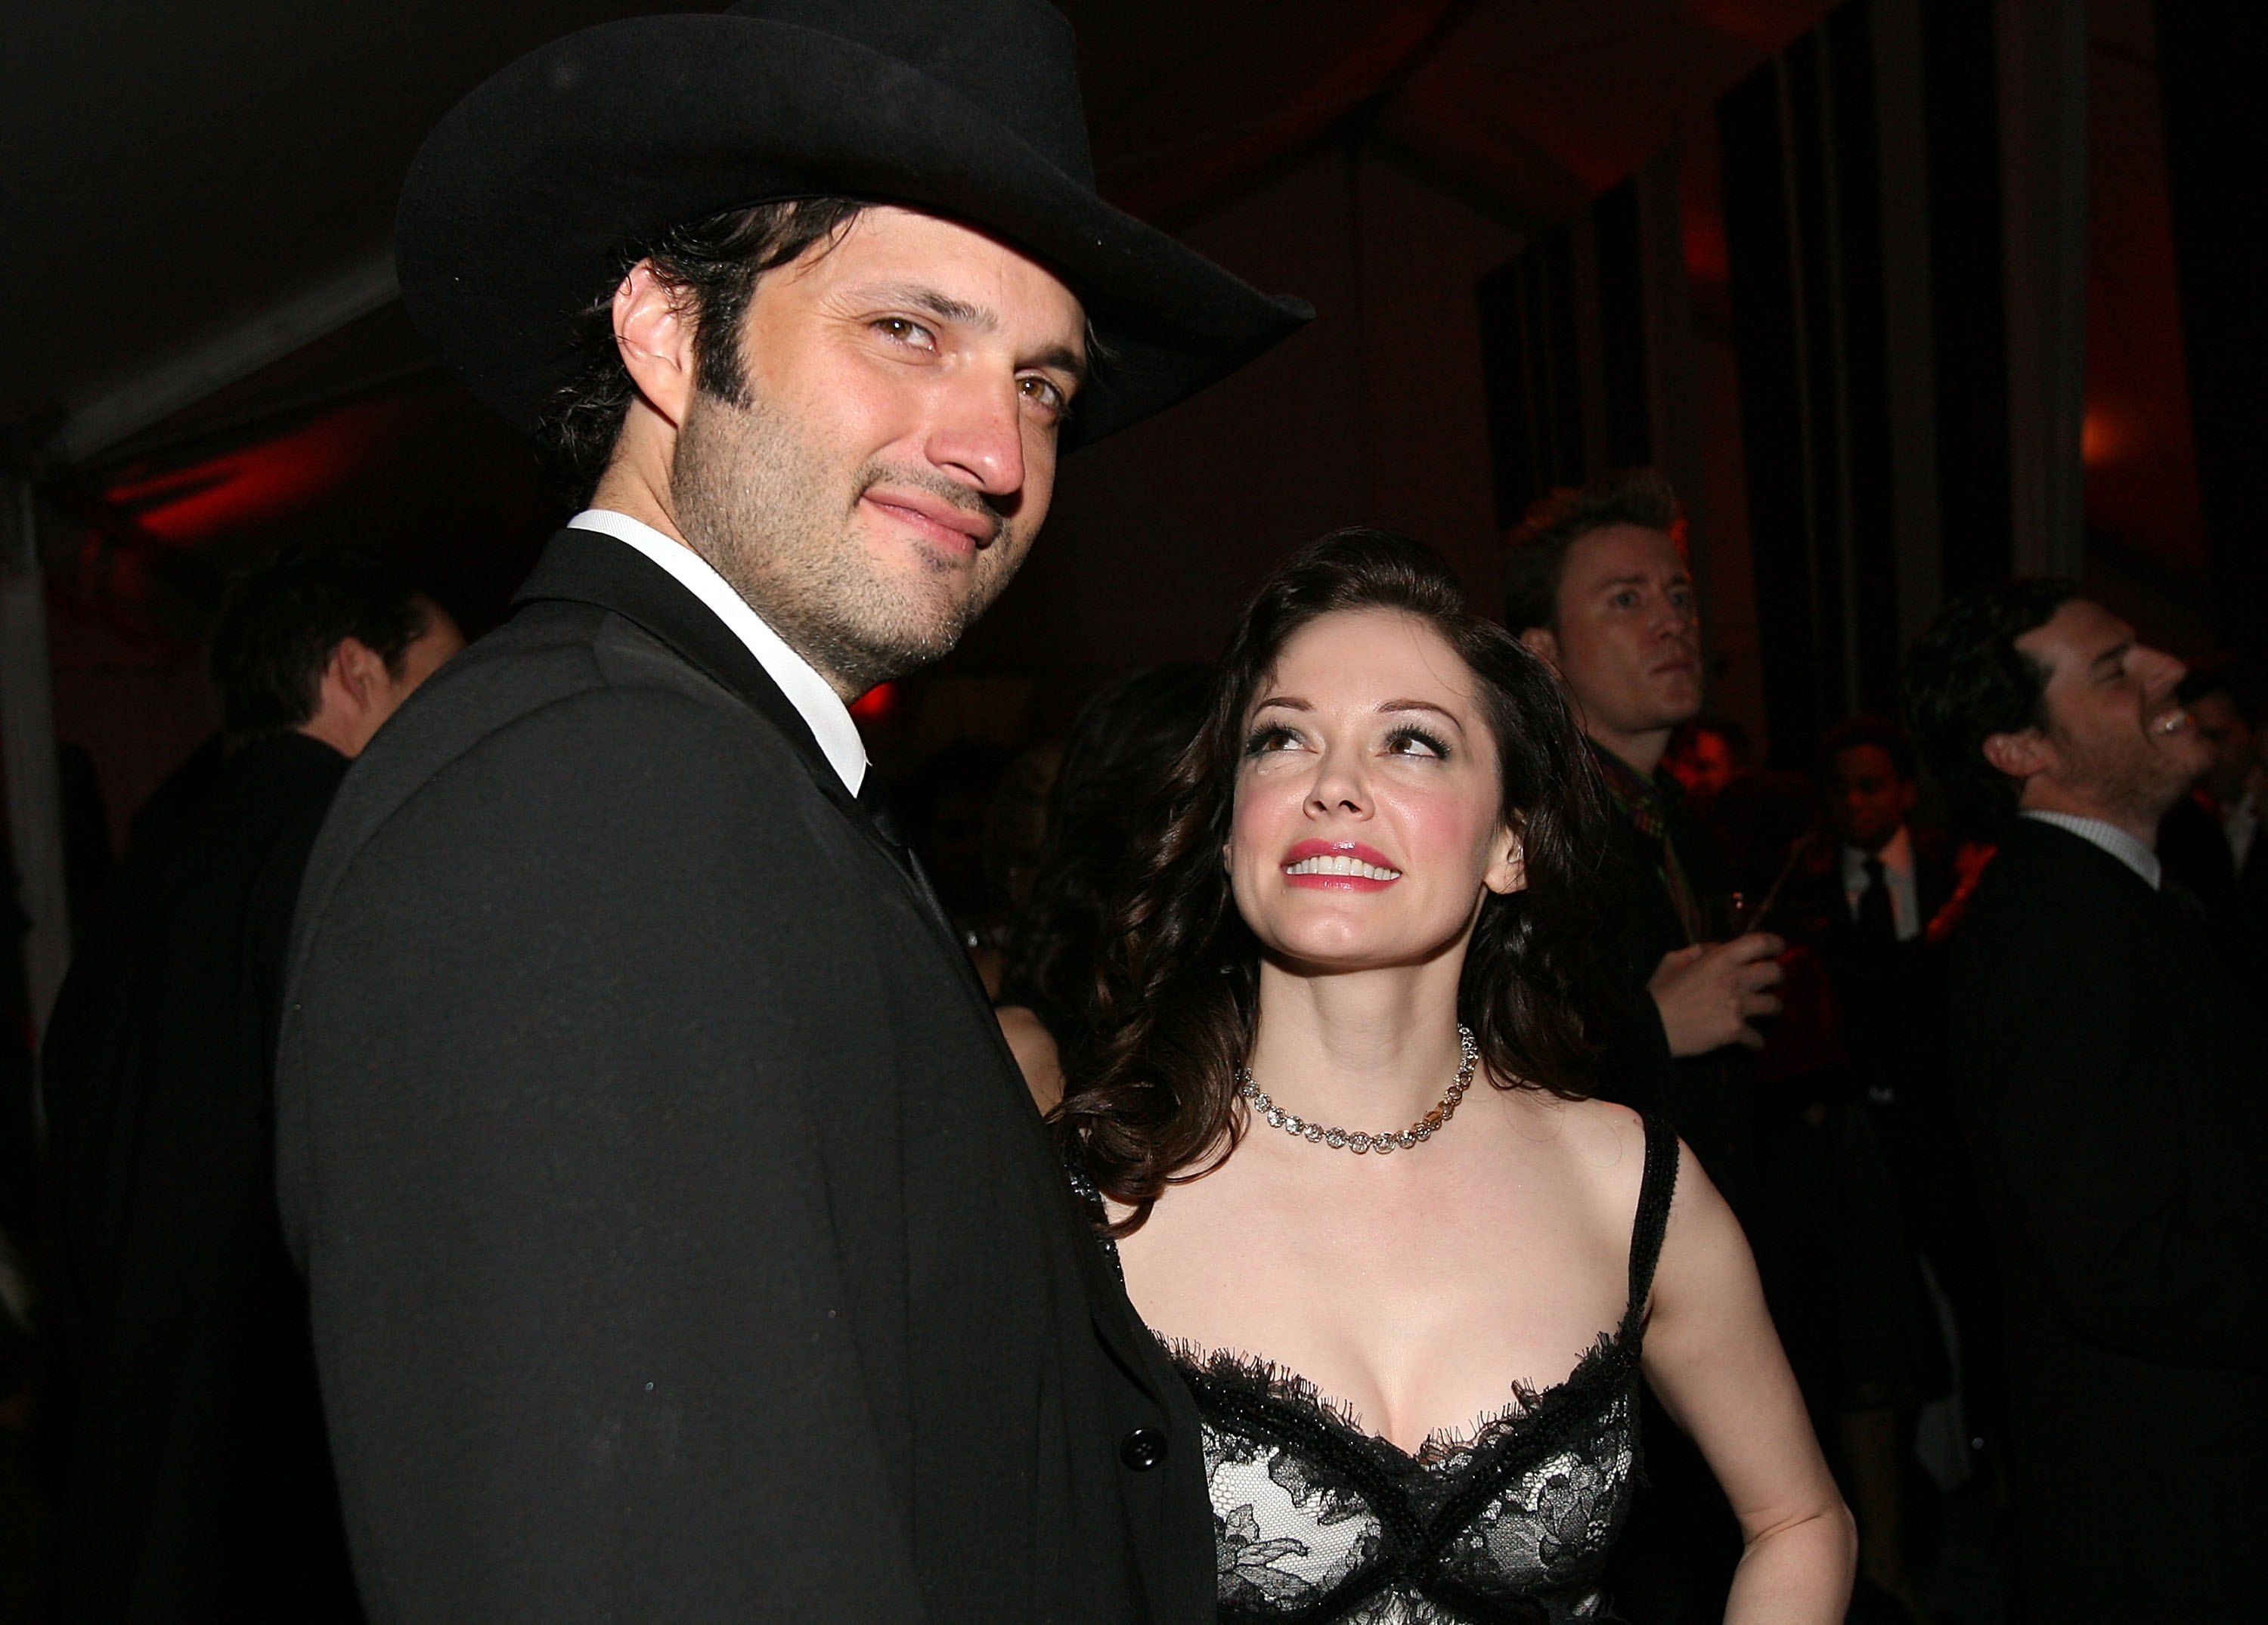 Robert Rodriguez and Rose McGowan at the Weinstein Company's 2007 Golden Globes After Party in 2007 in Beverly Hills | Source: Getty Images